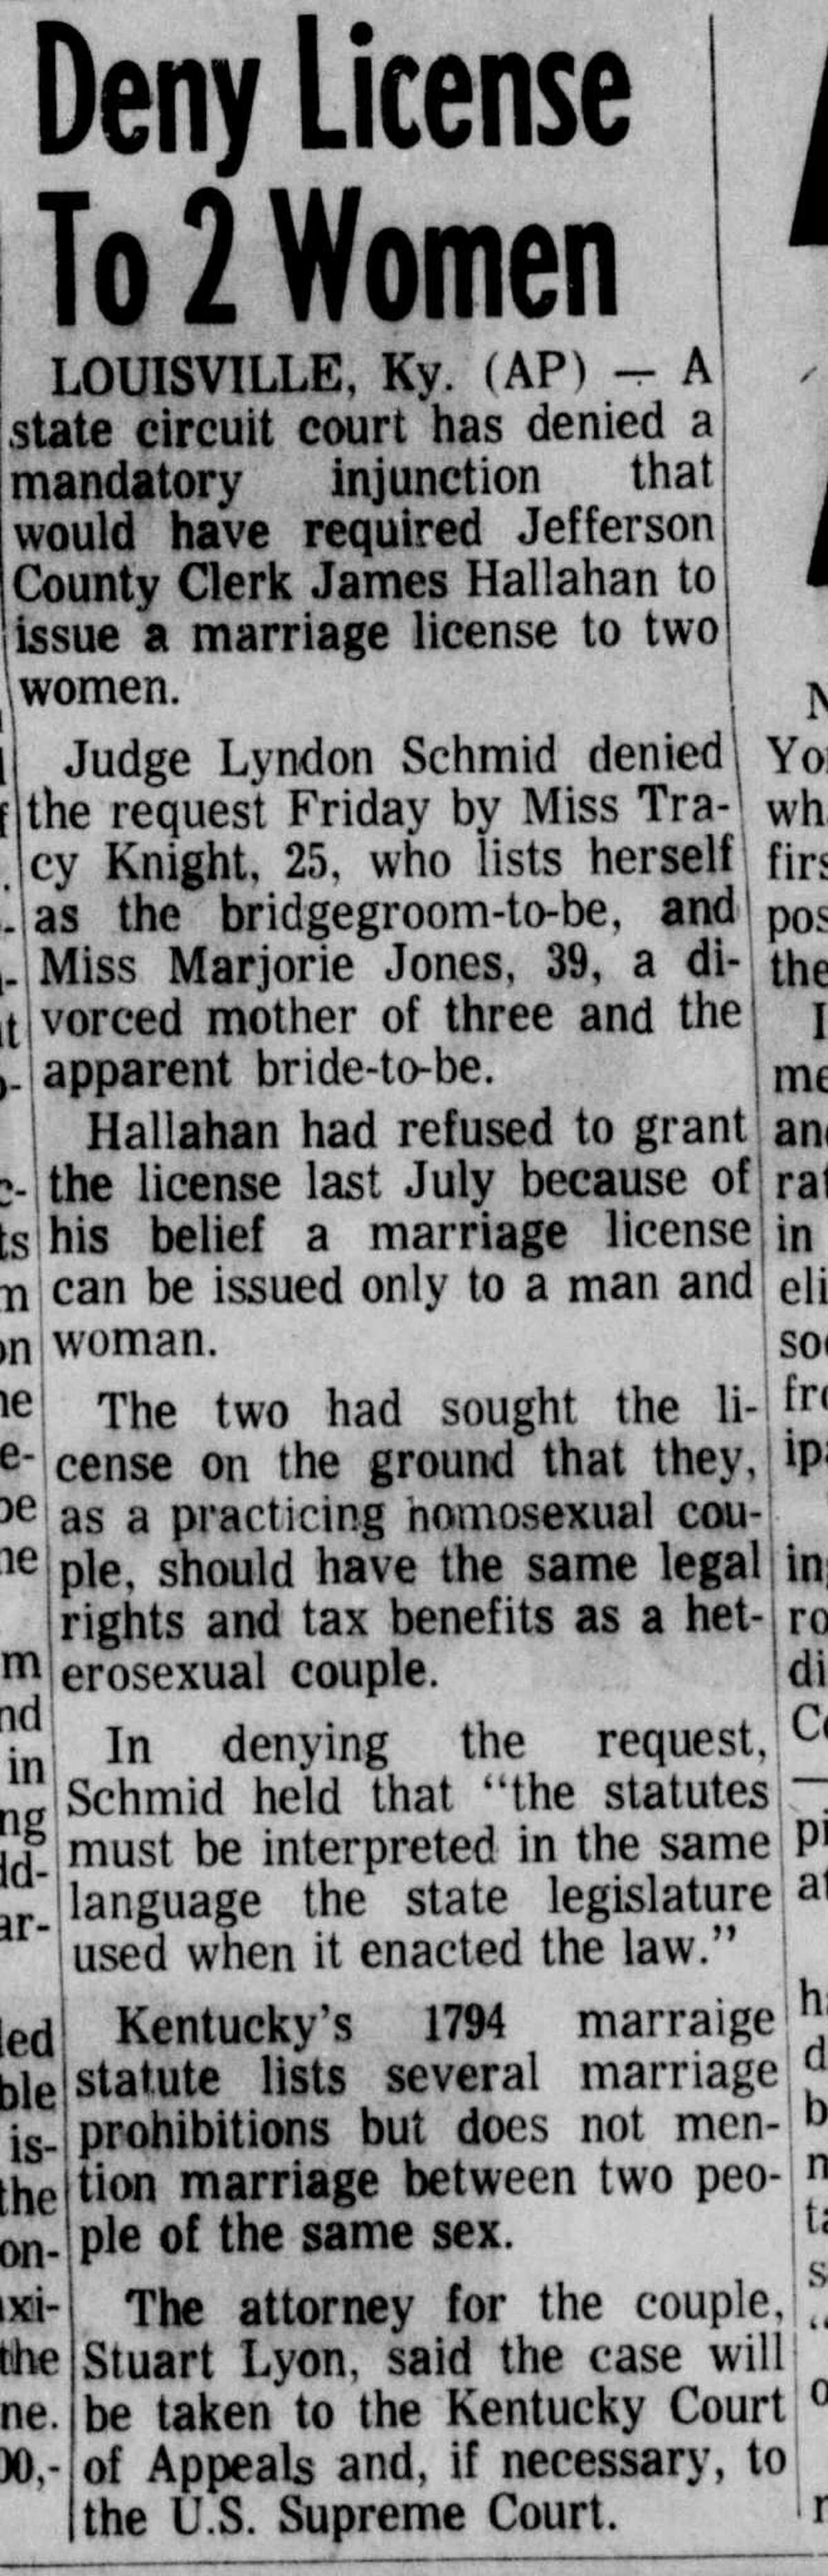 License Denied - February 1971 In another early 1970s case, Kentucky residents Tracy Knight and Marjorie Jones were denied a marriage license in February 1971. While Kentucky law at the time did not explicitly prohibit same-sex marriage, a state court later that year ruled against the two women saying the relationship proposed is not a marriage. State law was changed in 1998 to define marriage as between one man and one woman.